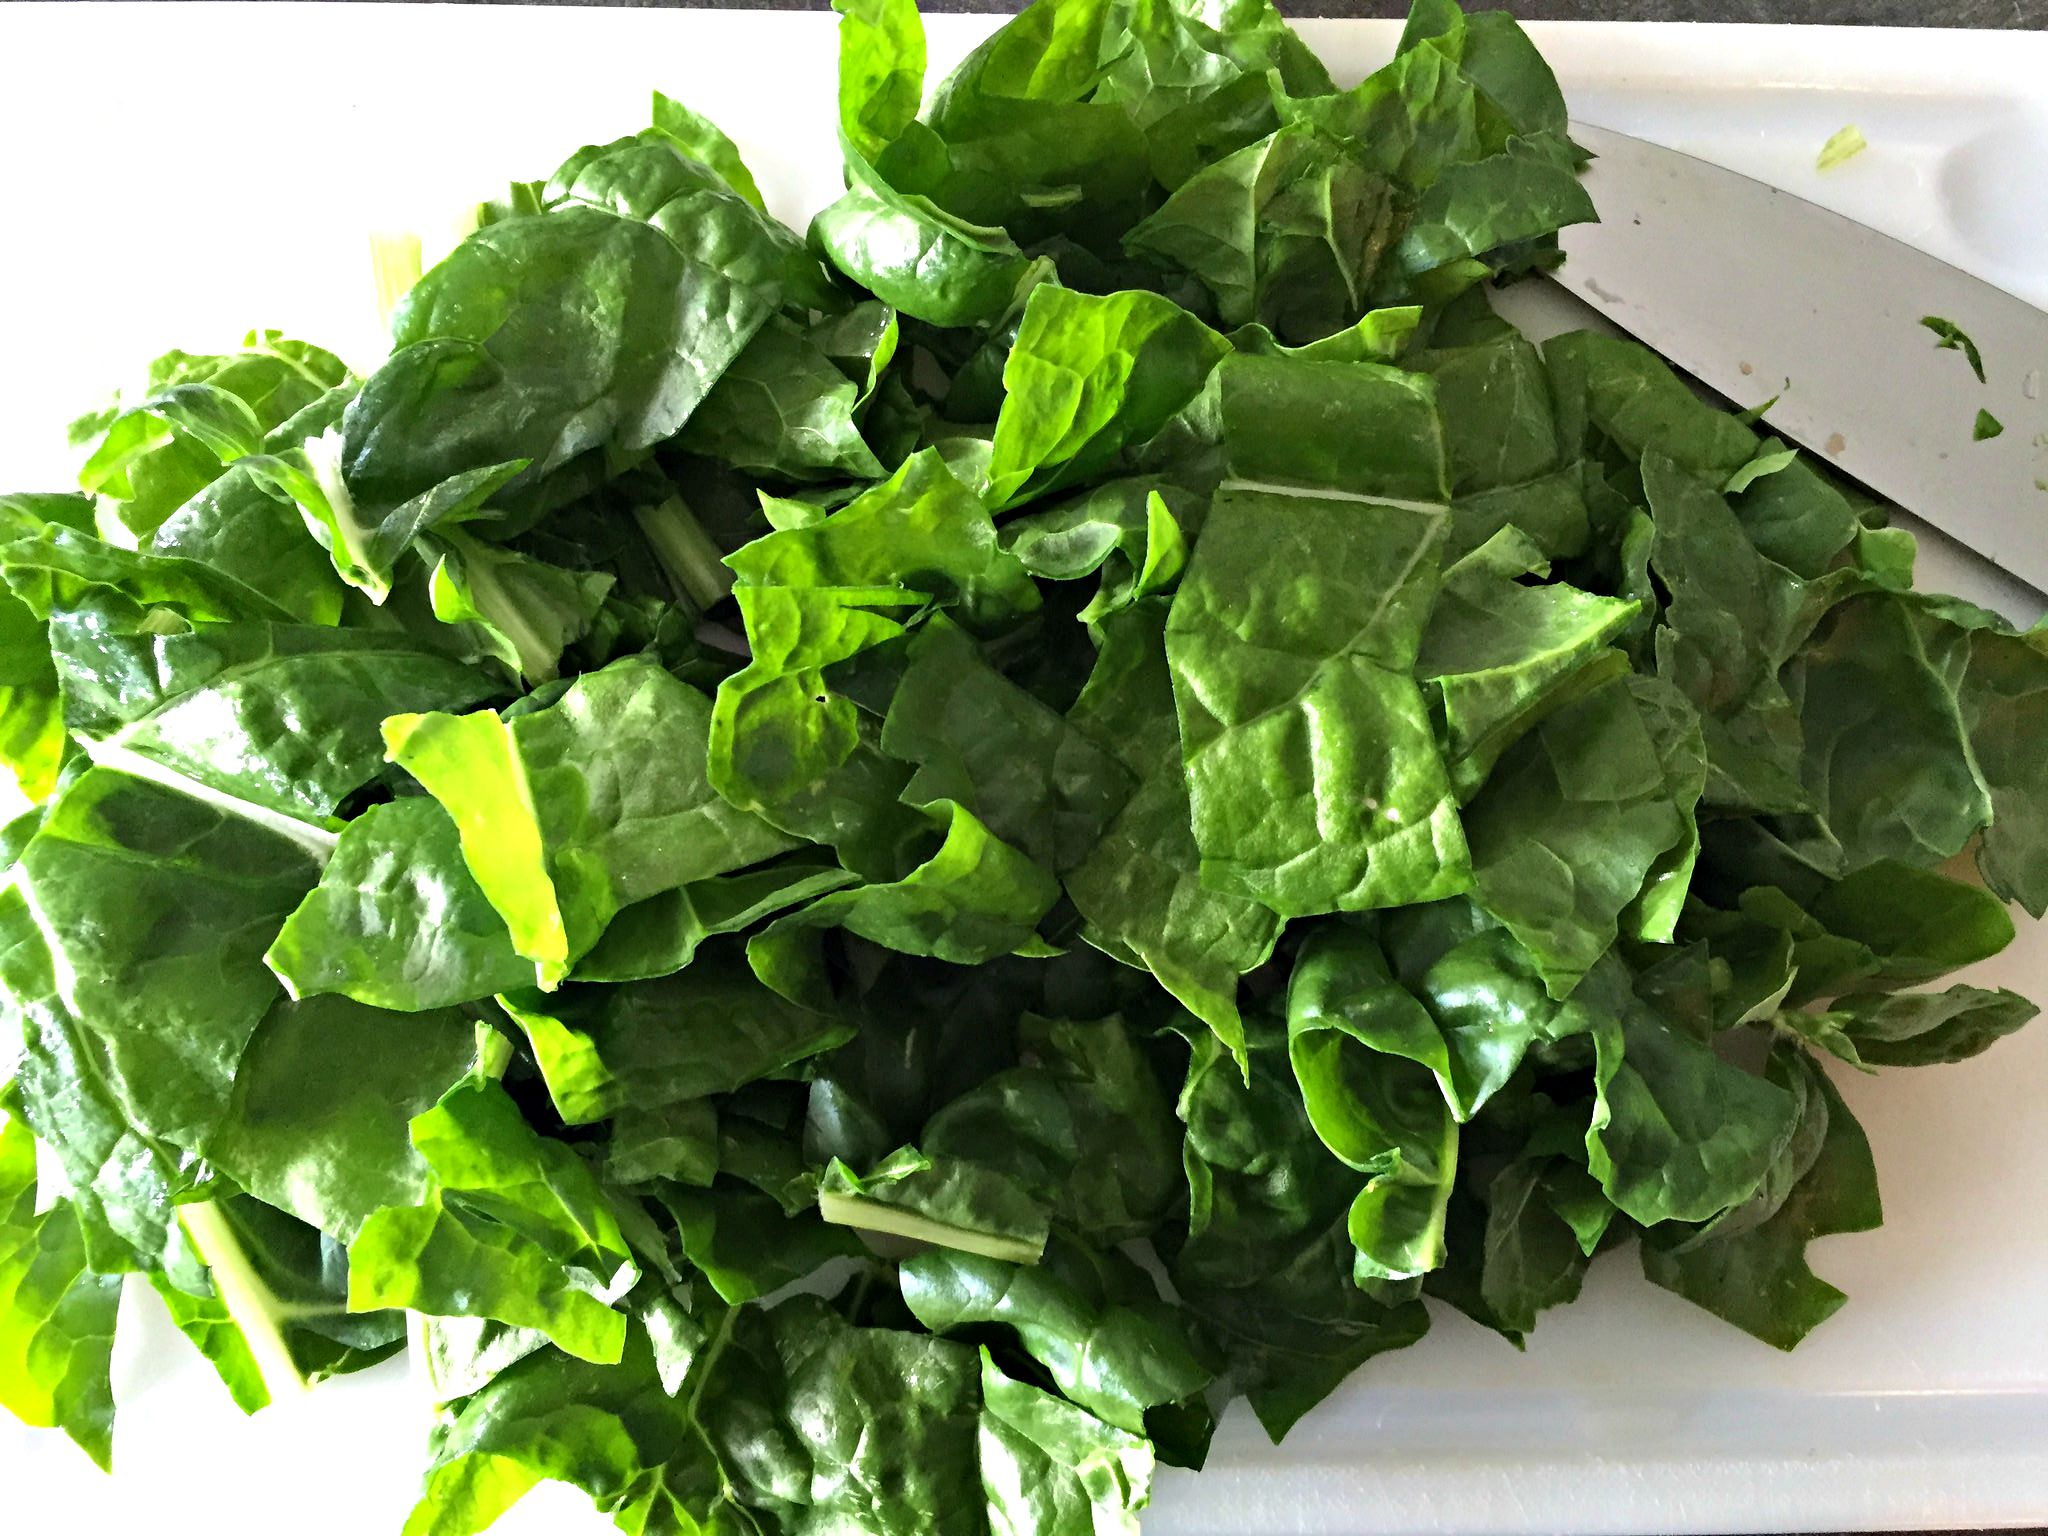 chopped up chard